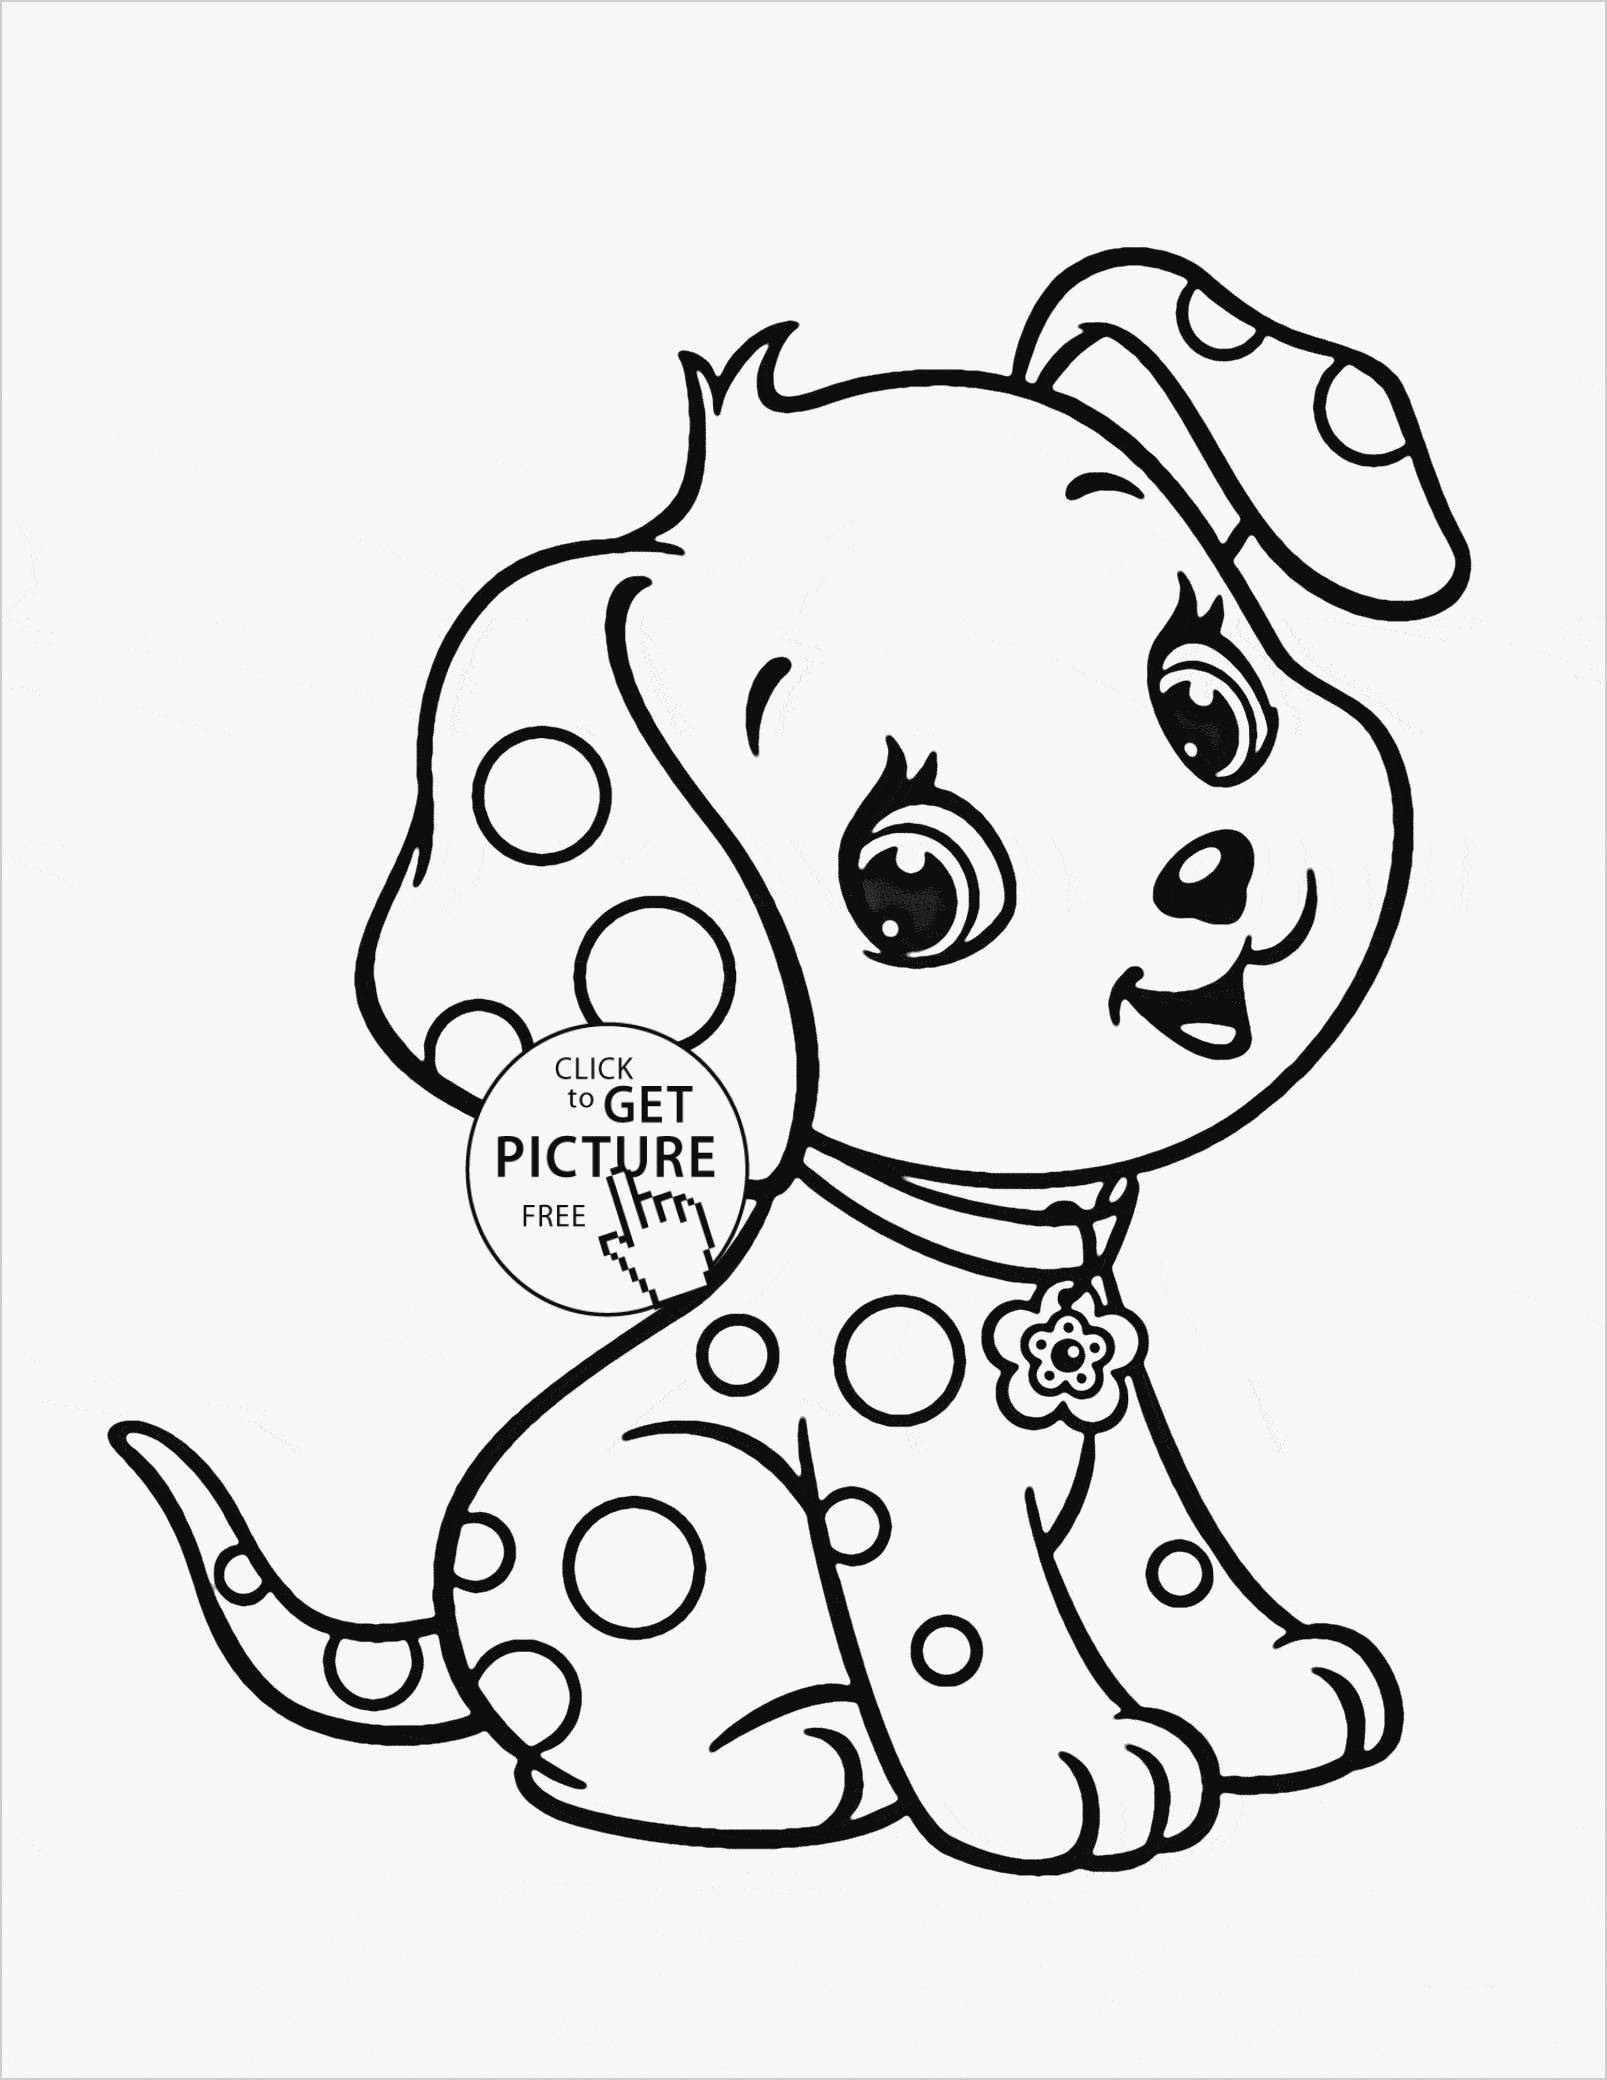 free printable kindergarten coloring pages Download-4th Grade Multiplication Coloring Sheets Lovely Awesome Coloring Pages Dogs New Printable Cds 0d Coloring Pages 5-e